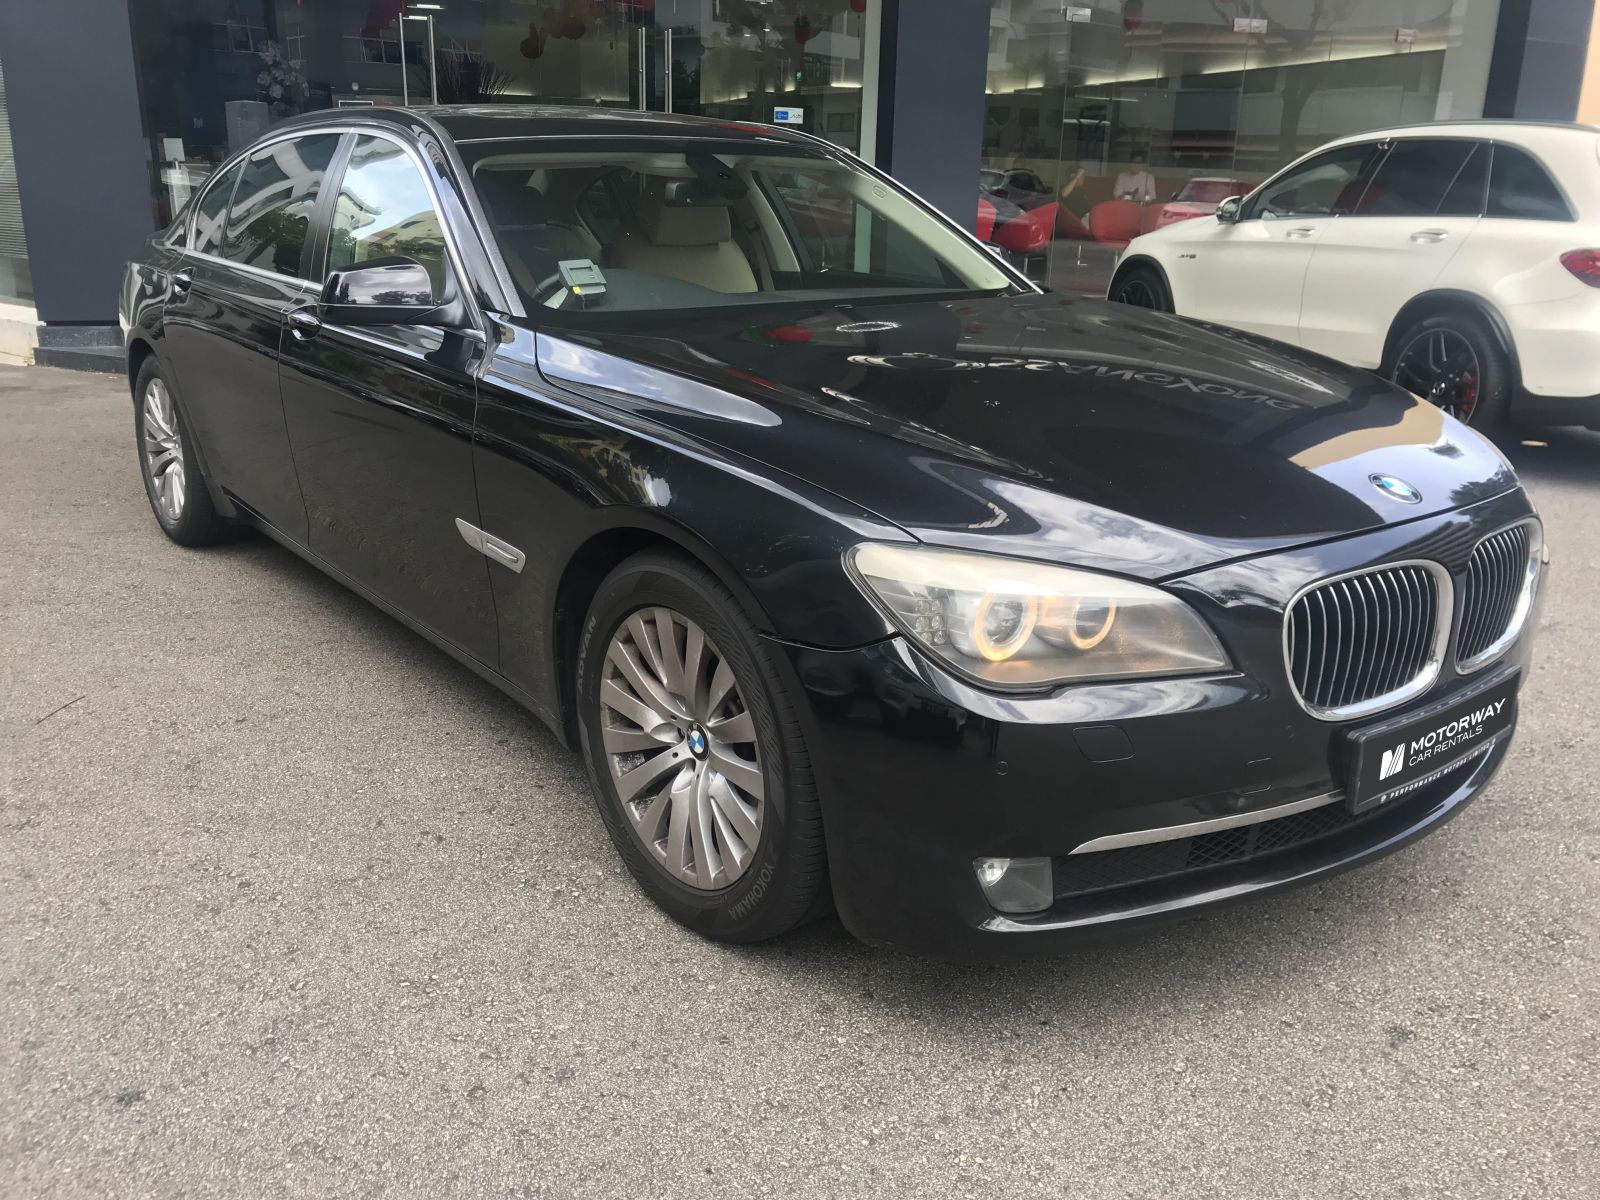 BMW 7 Series 730i (For Rent)